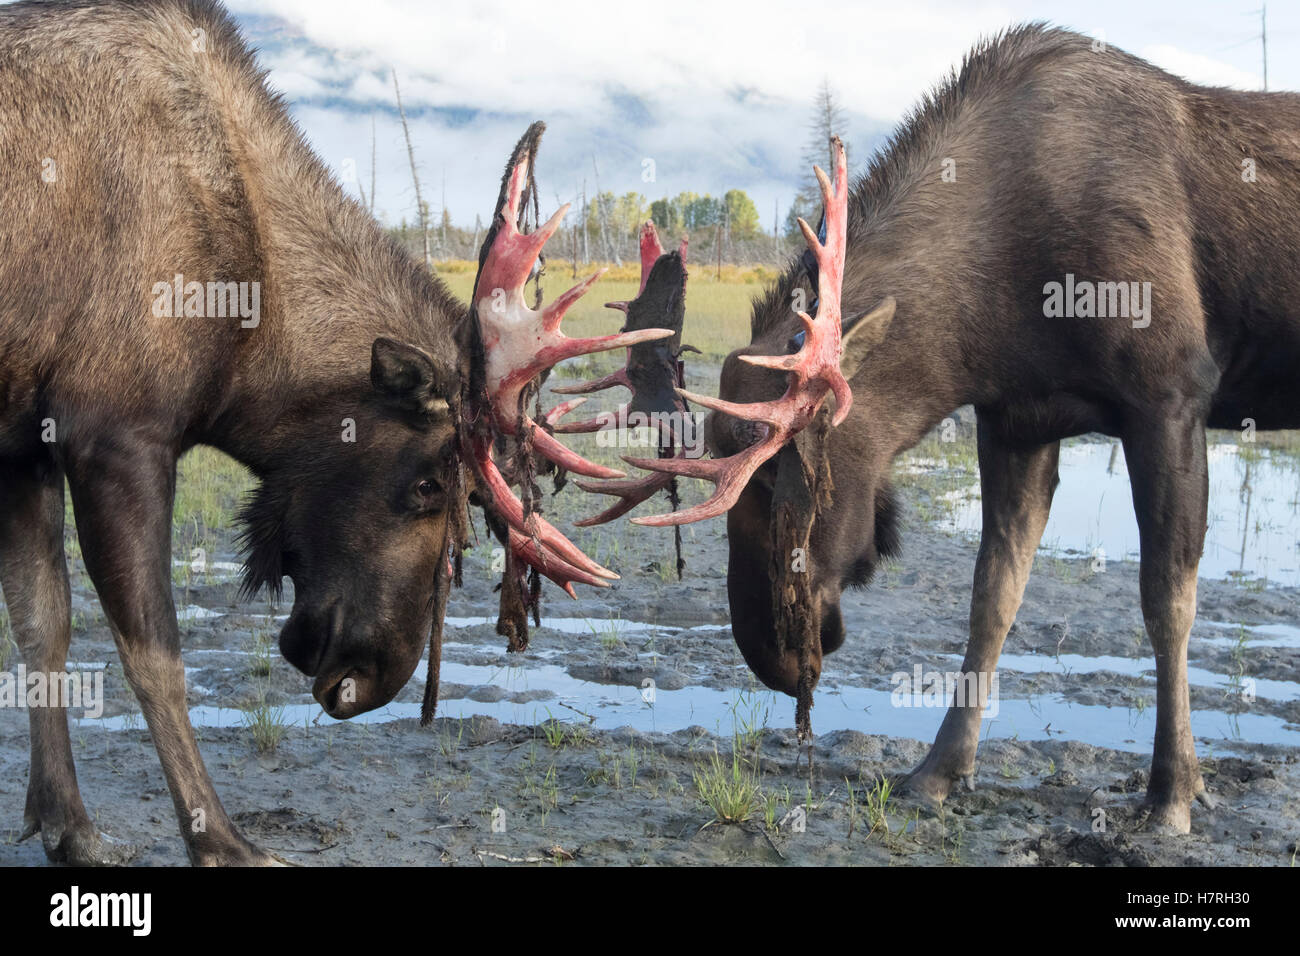 Bull moose (alces alces) just coming out of shedding its velvet and antlers look a little red,  Alaska Wildlife - Stock Image